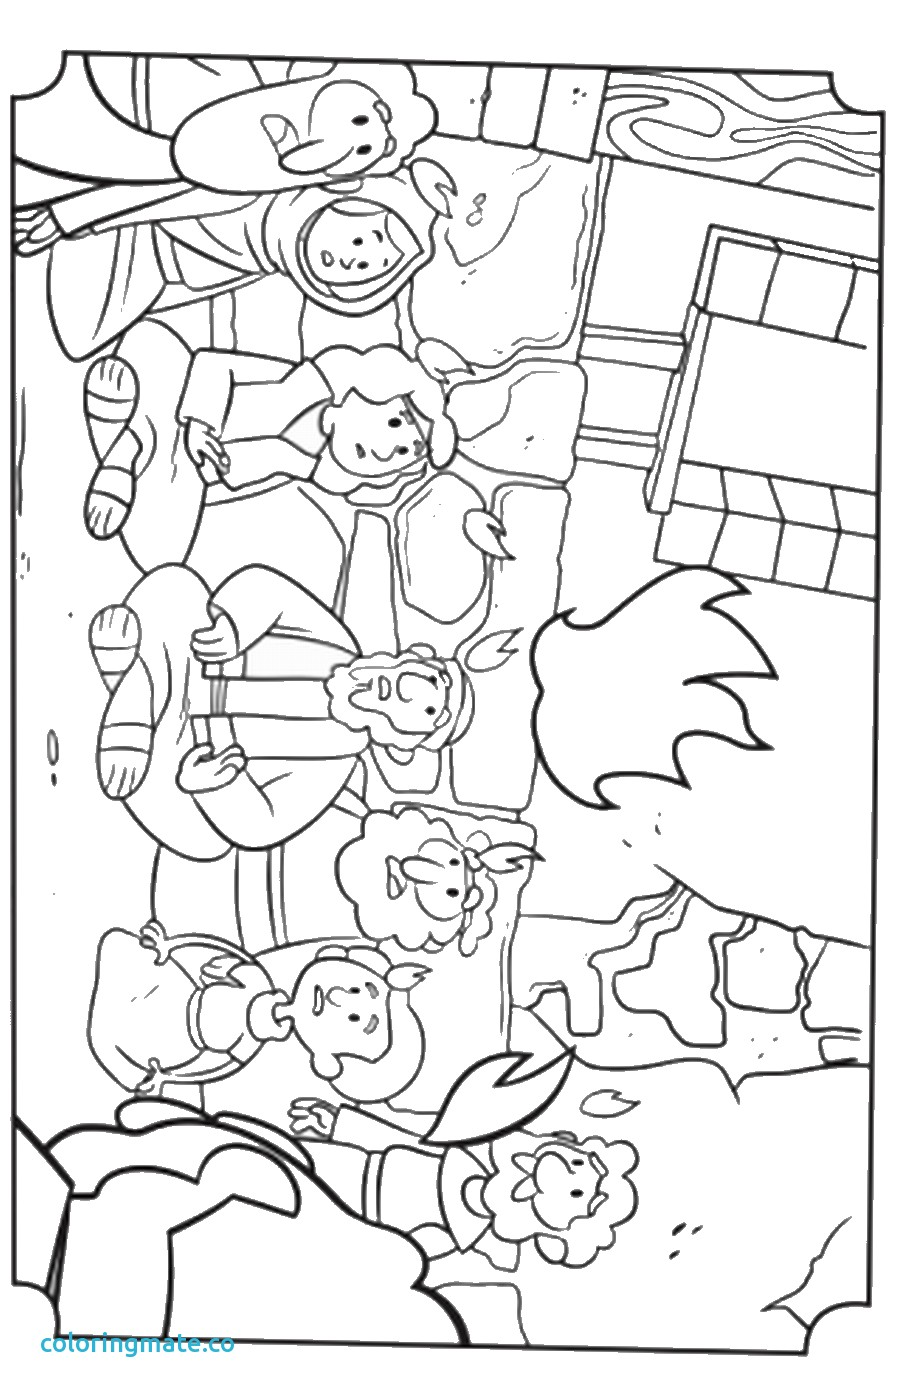 day of pentecost coloring pages descent of the holy spirit at pentecost super coloring coloring day pentecost of pages